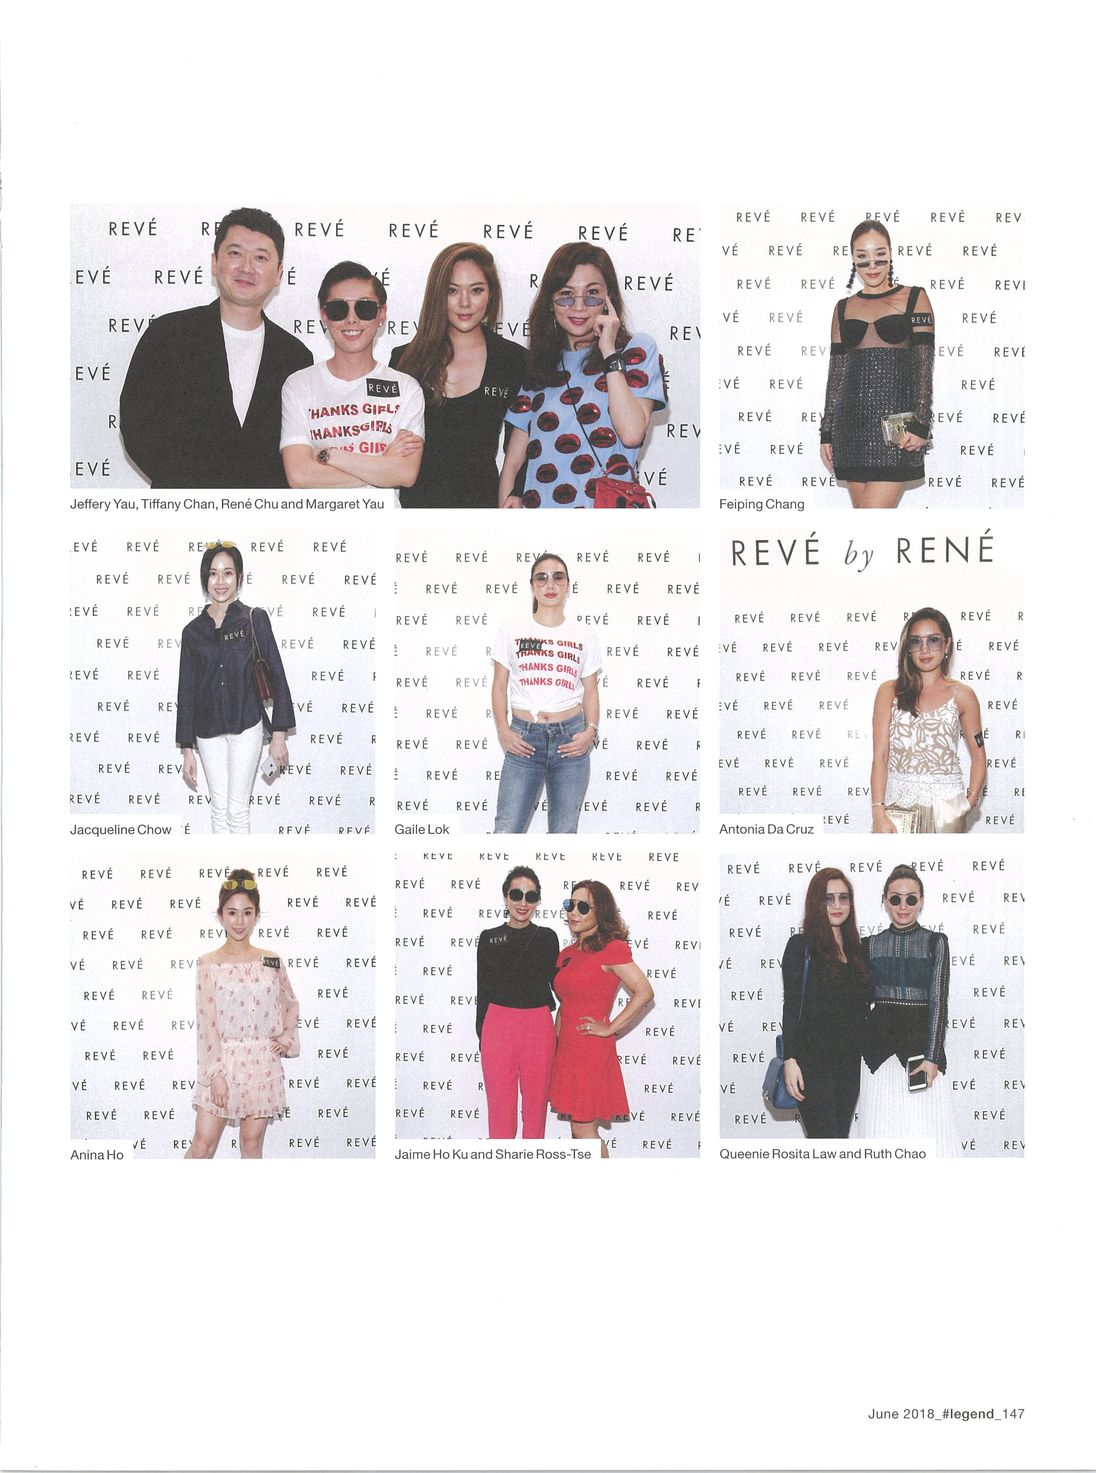 Hashtag Legend covers REVE by RENE Hong Kong event, Tiffany Chan, Rene Chu